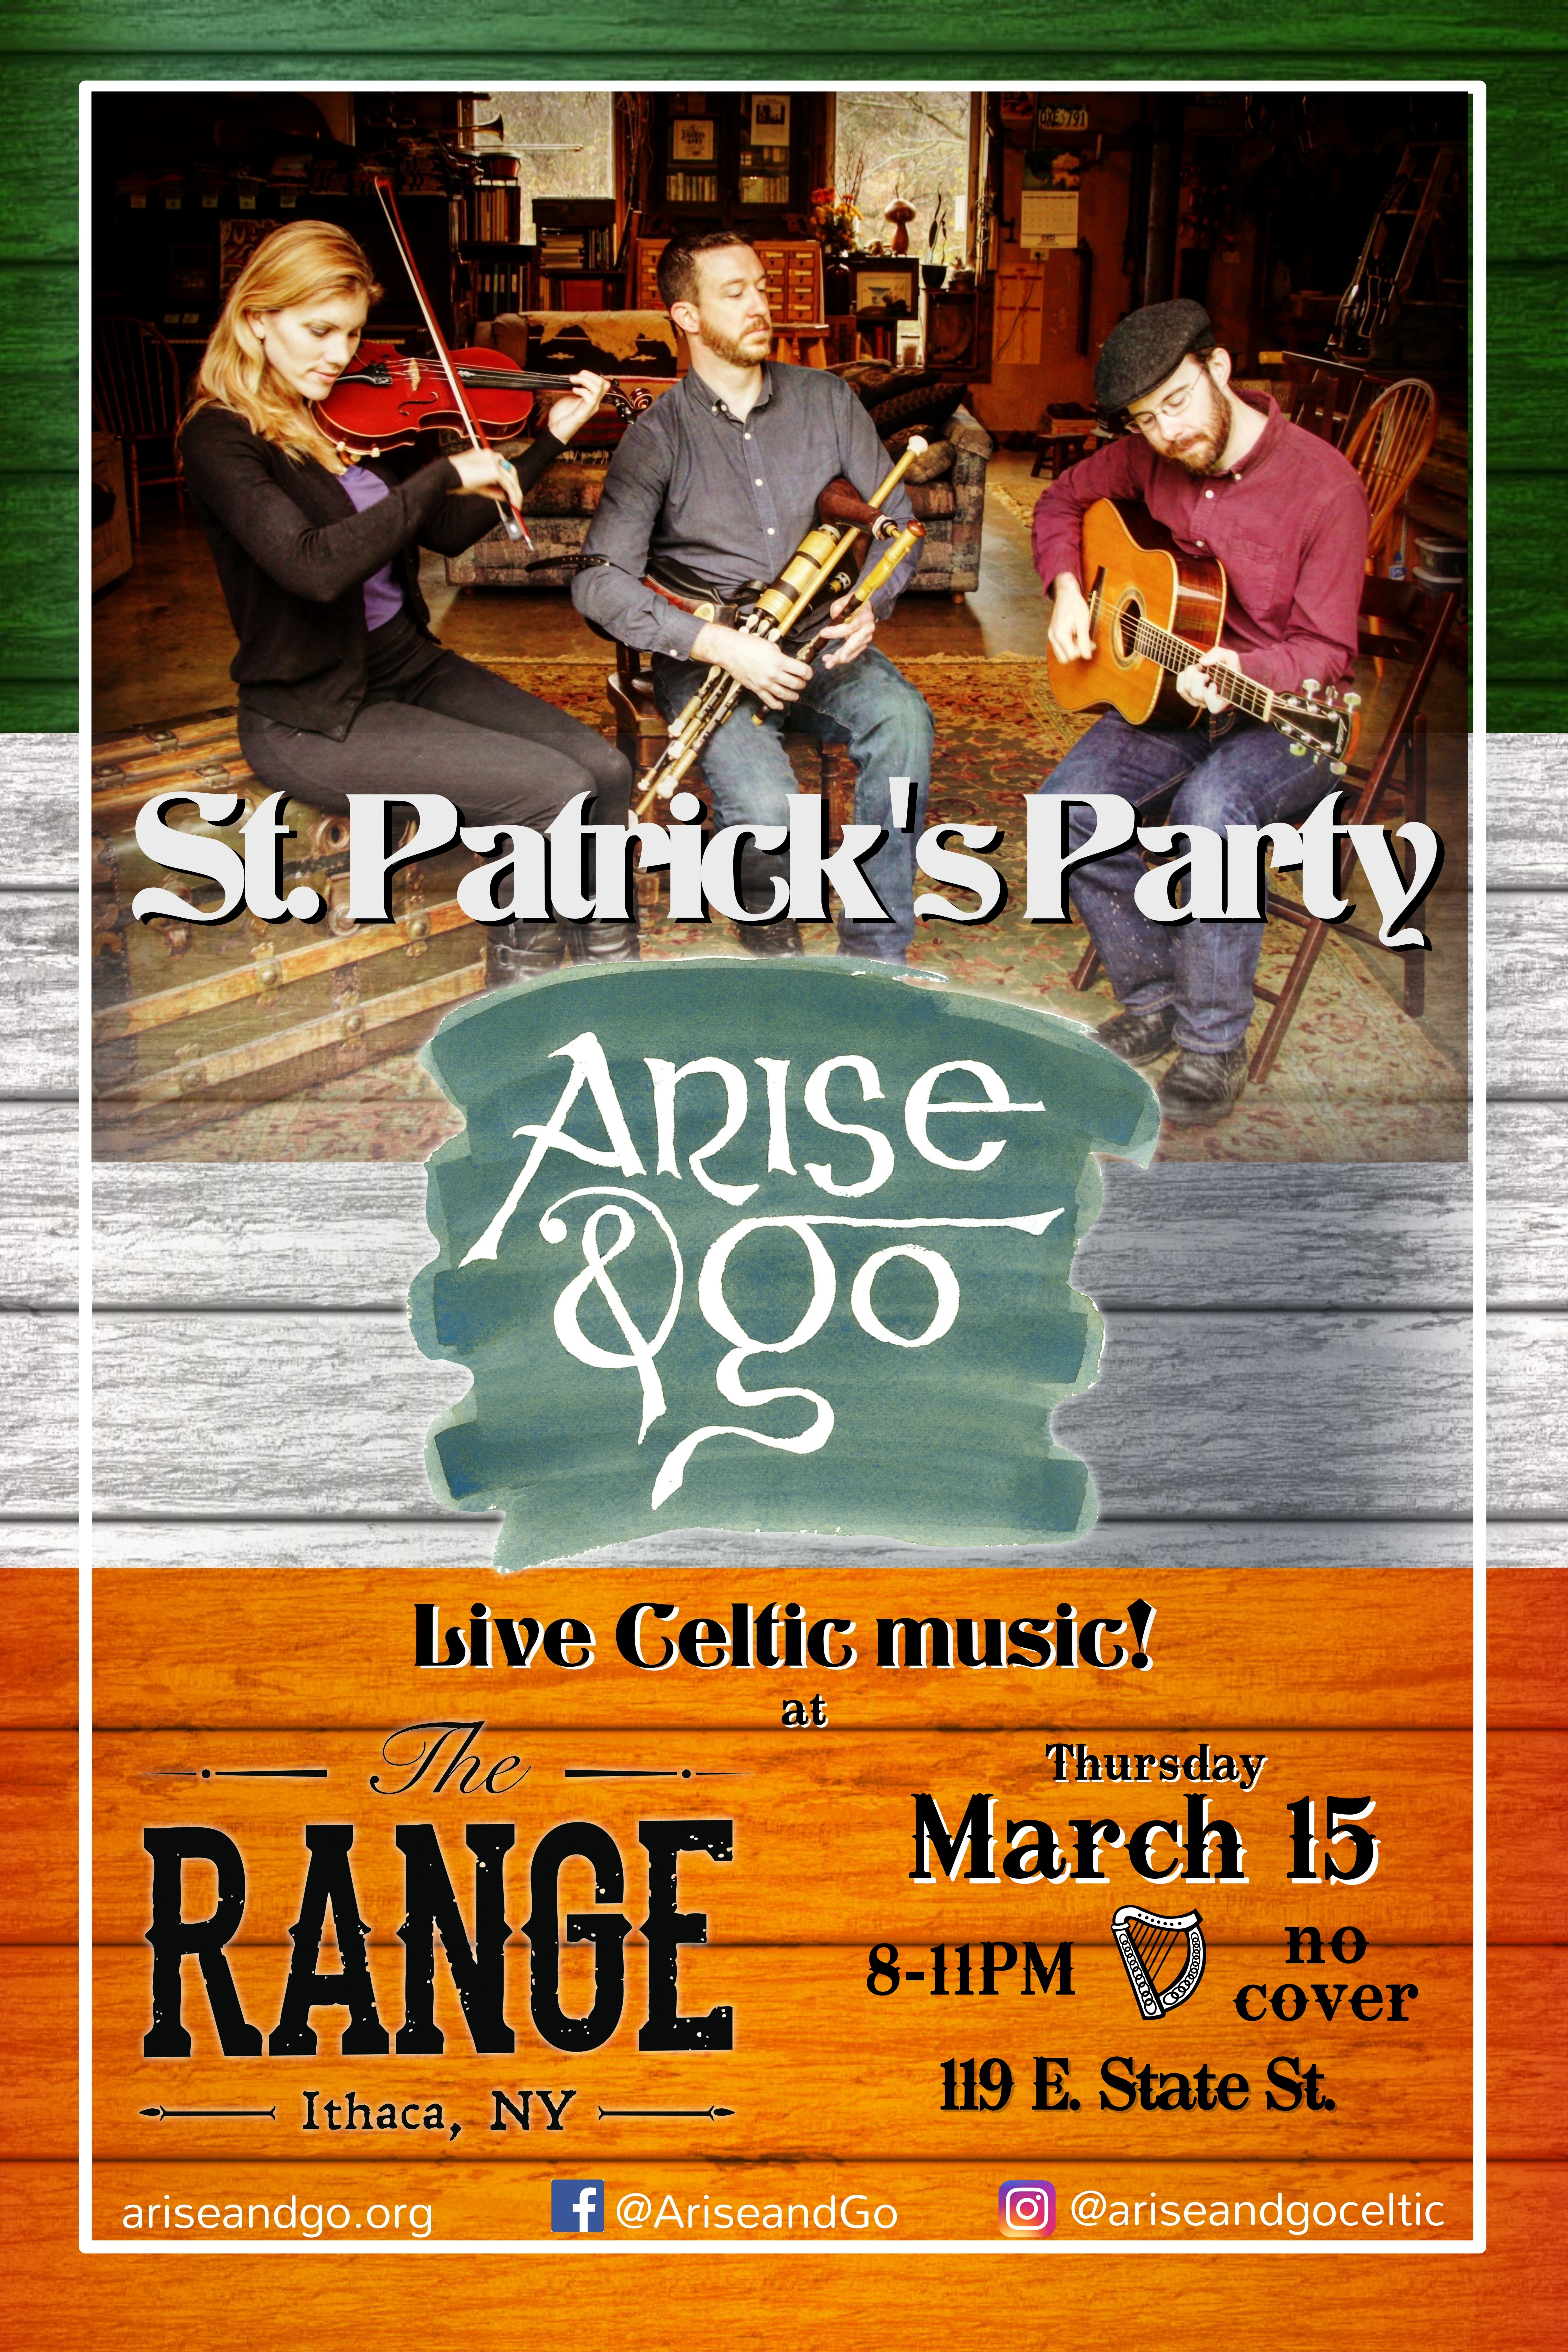 range irish st saint pattys patty's patricks day music live traditional celtic harp guinness thursday ithaca downtown commons live free